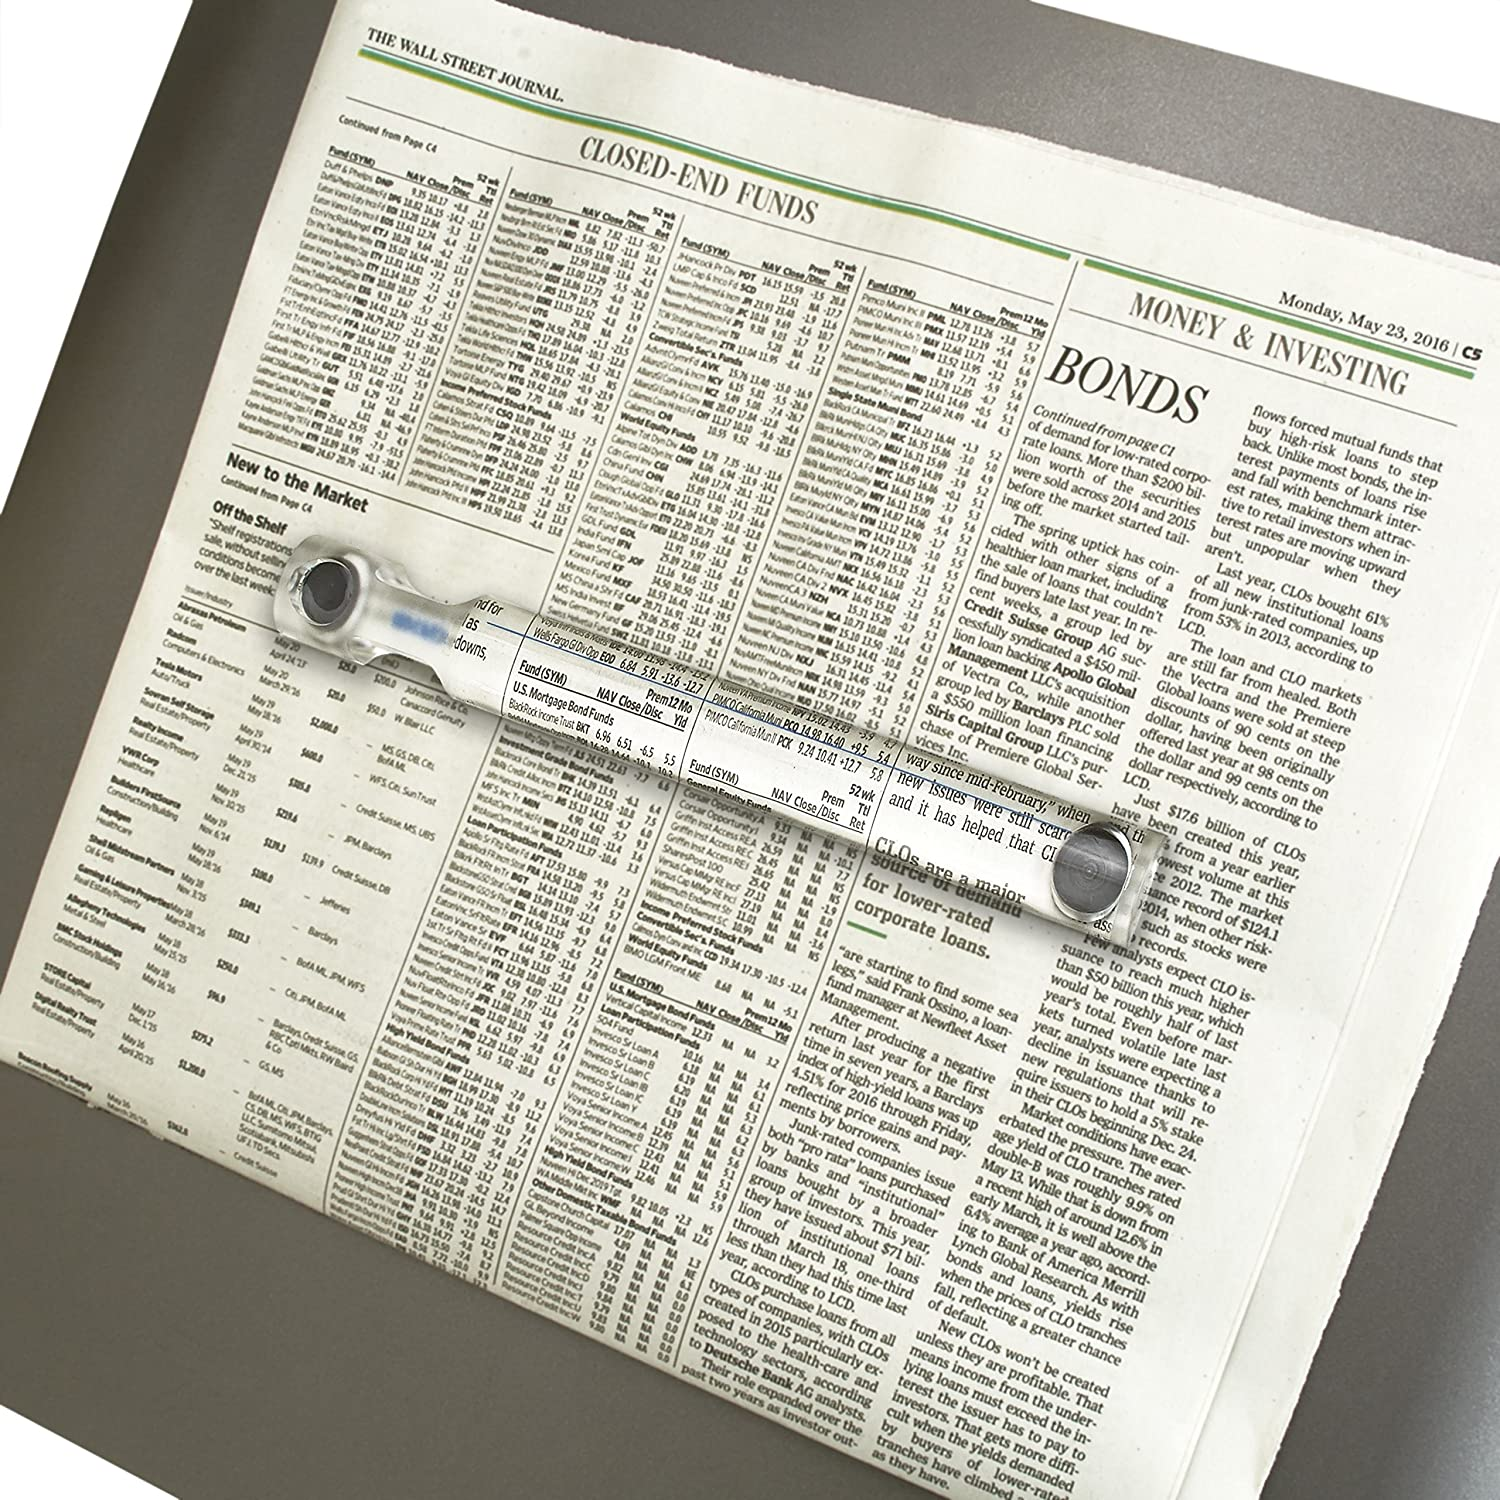 Carson MagniCraft 1.5x Bar Magnifier with Built-In Magnets MC-10